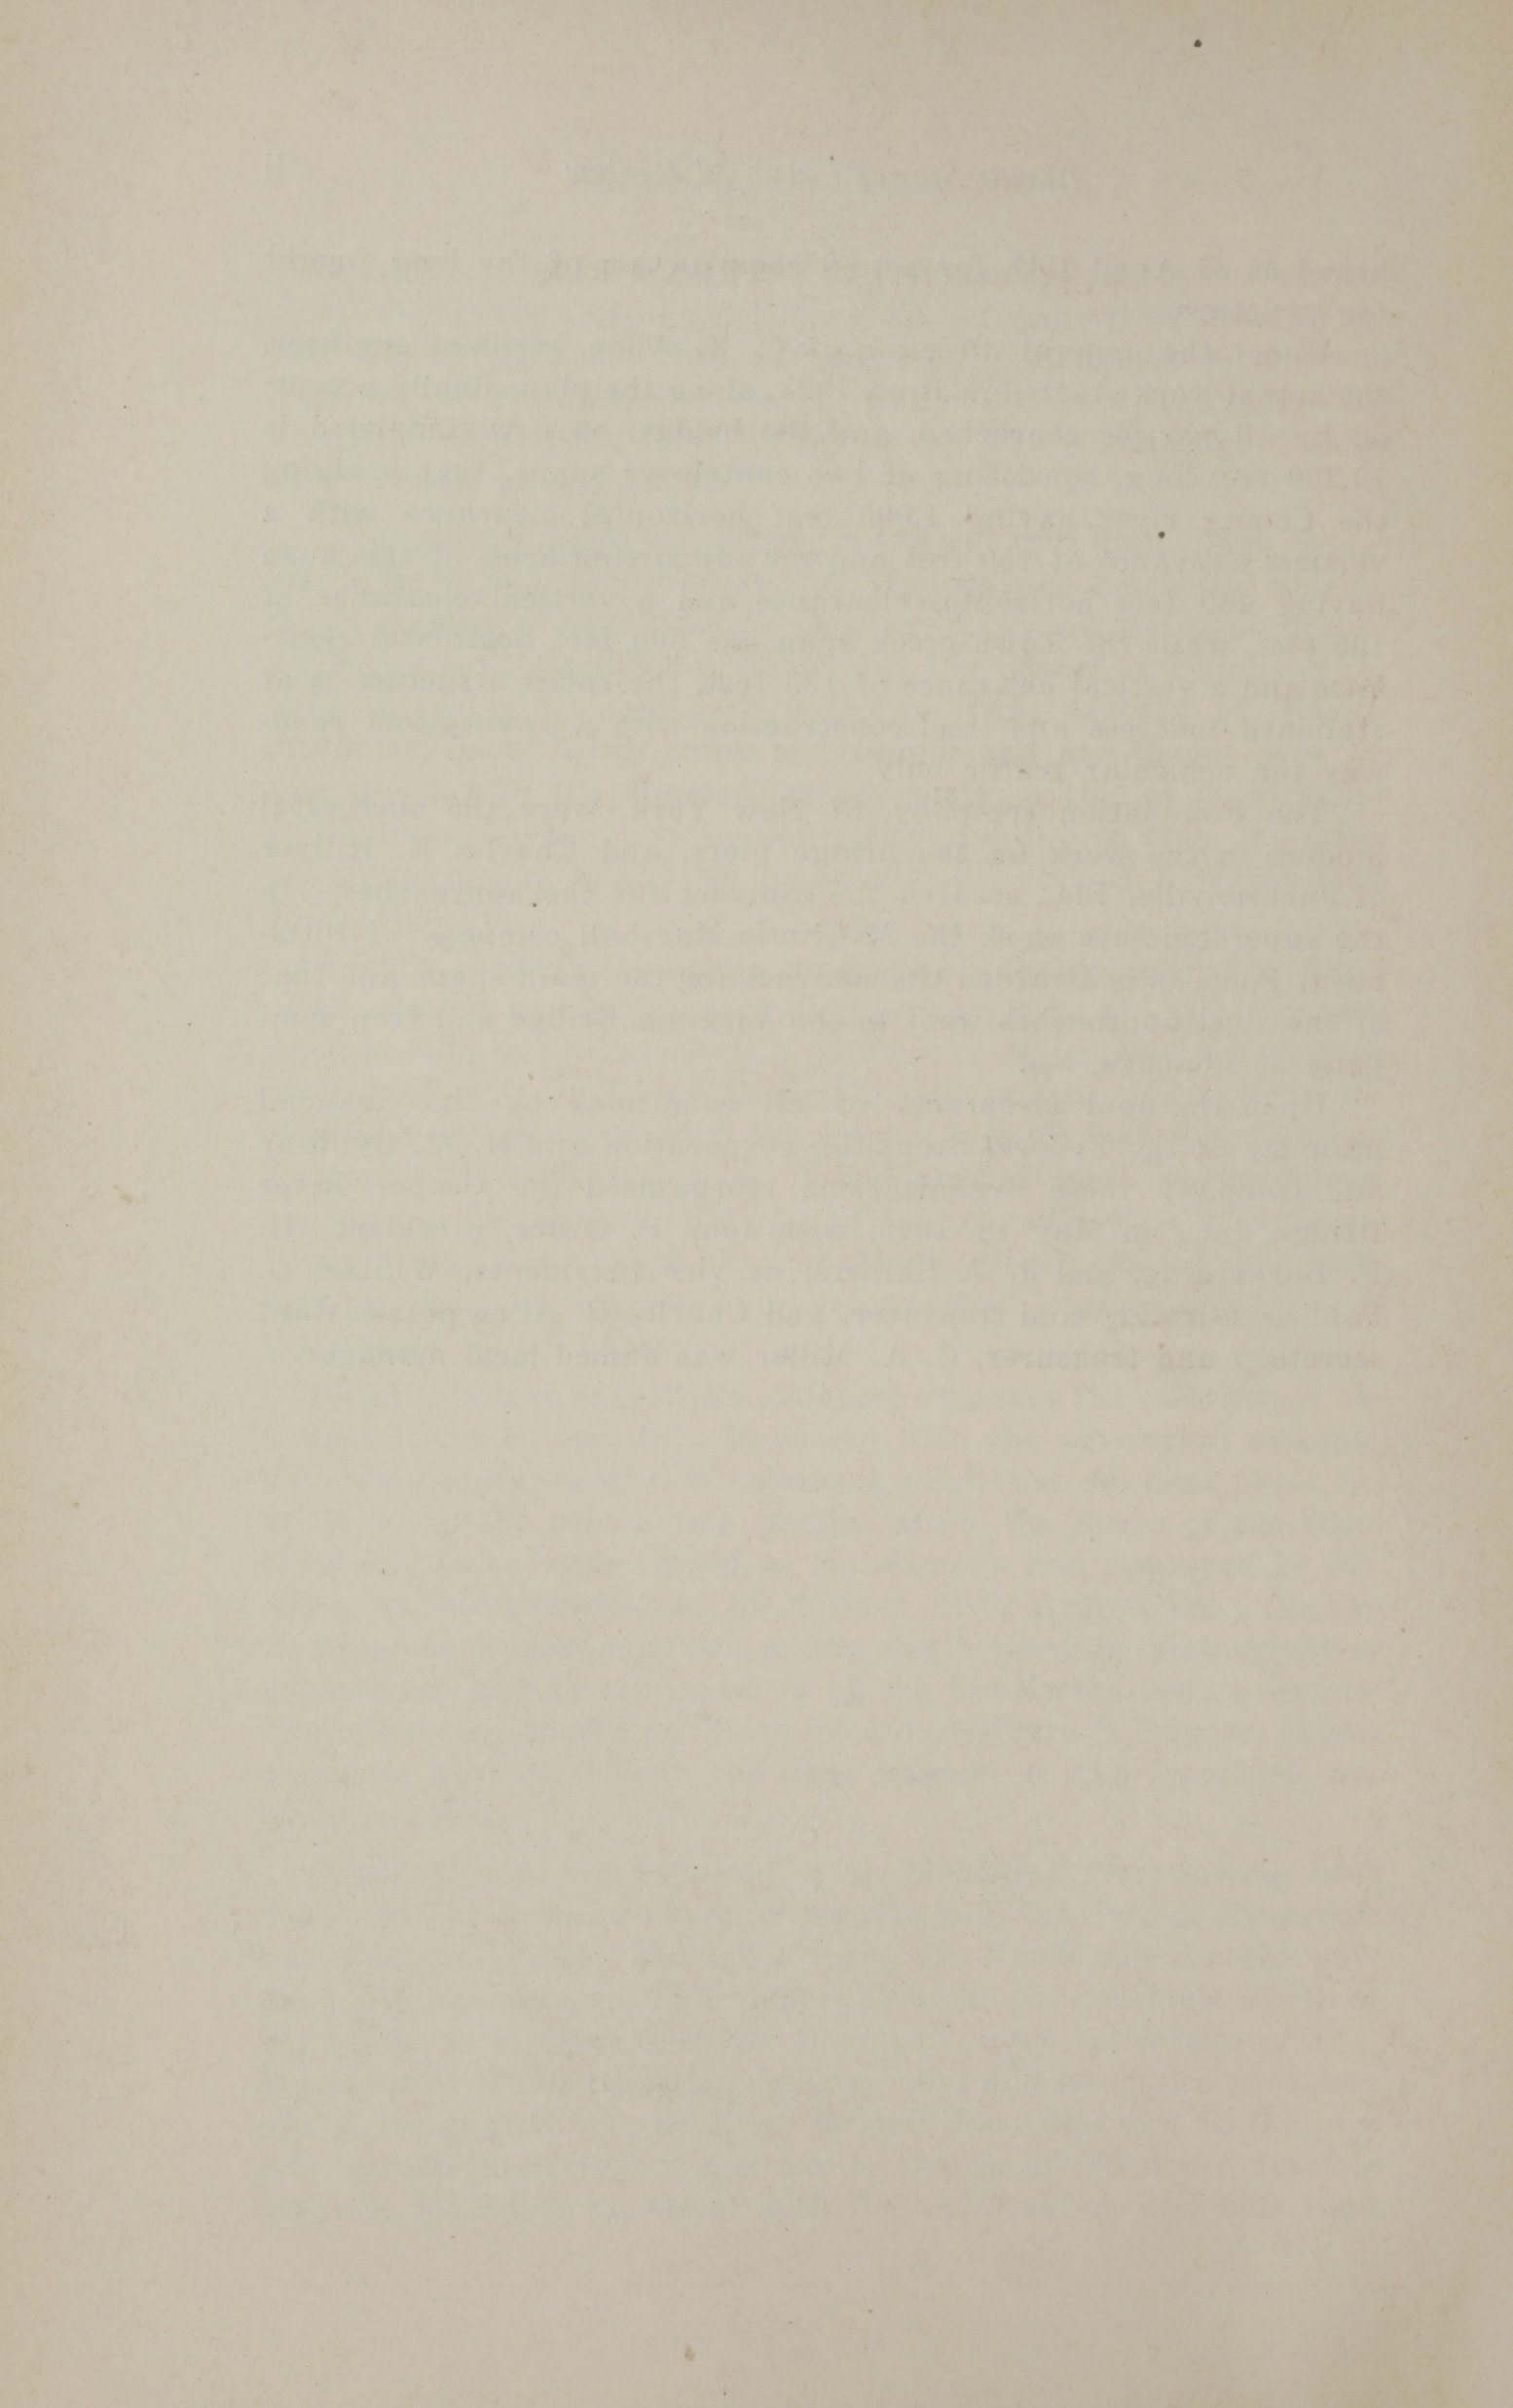 Charleston Yearbook, 1930, page lii